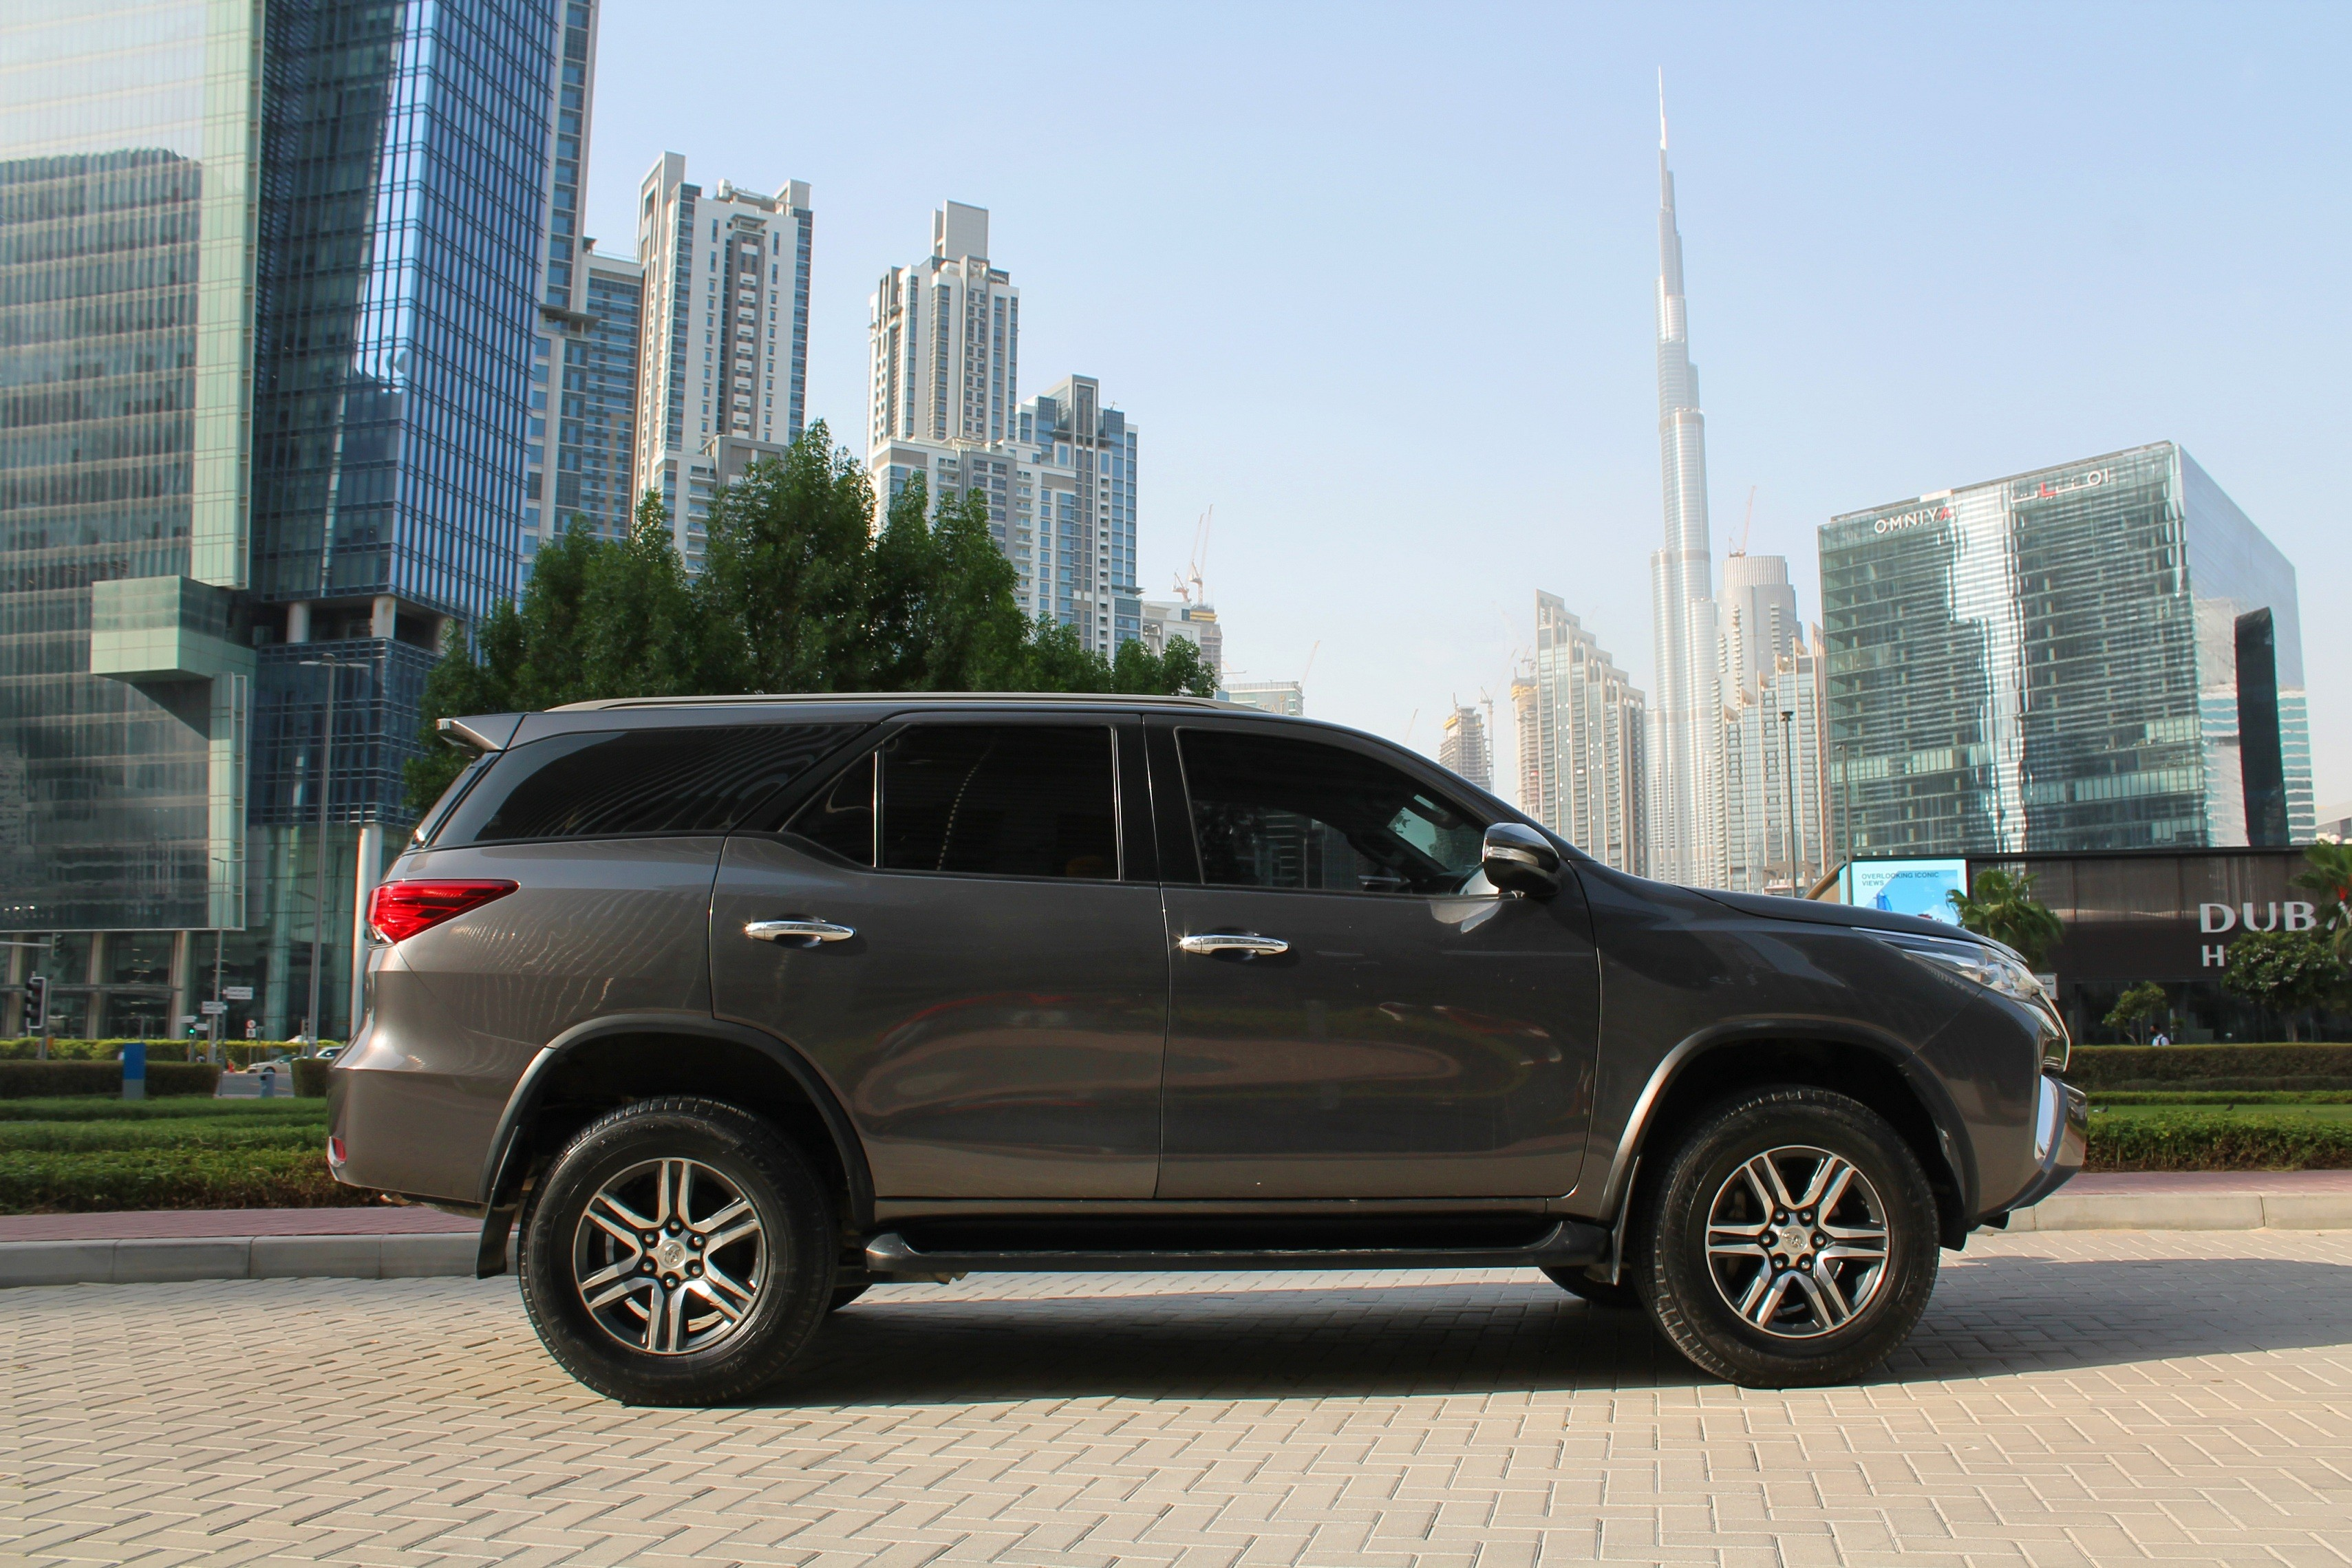 https://quickdrive.ae/uploads/2020/07/22/2 fortuner.jpg